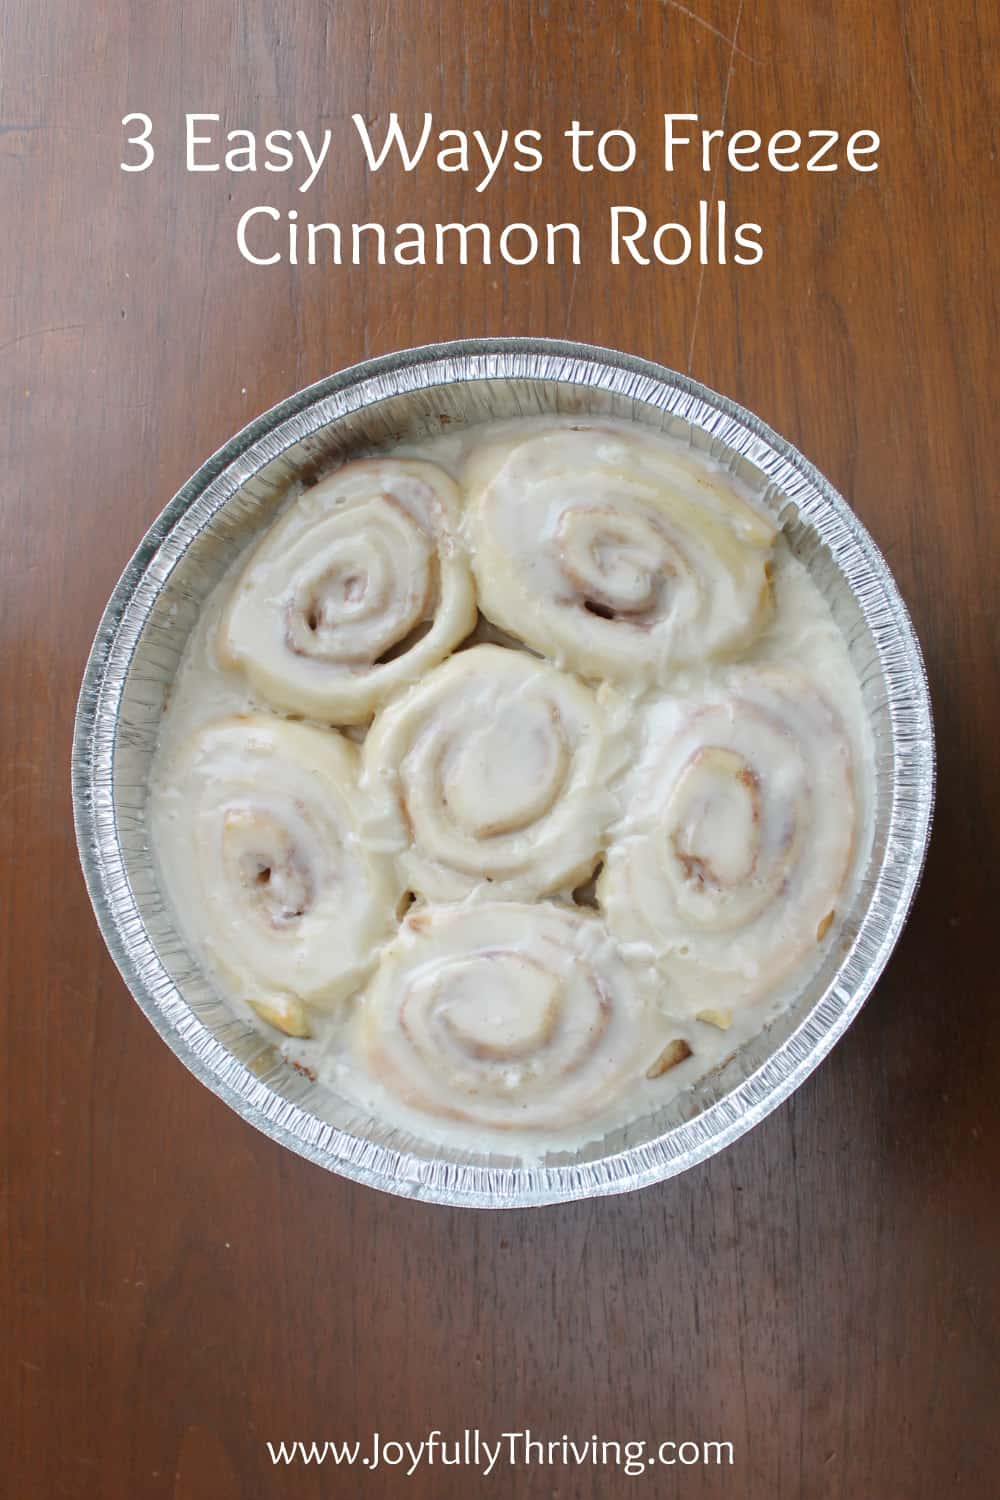 I've always wondered how to freeze cinnamon rolls! Now that I know how to freeze cinnamon rolls, I can enjoy homemade cinnamon rolls easily in the morning! #homemadecinnamonrolls